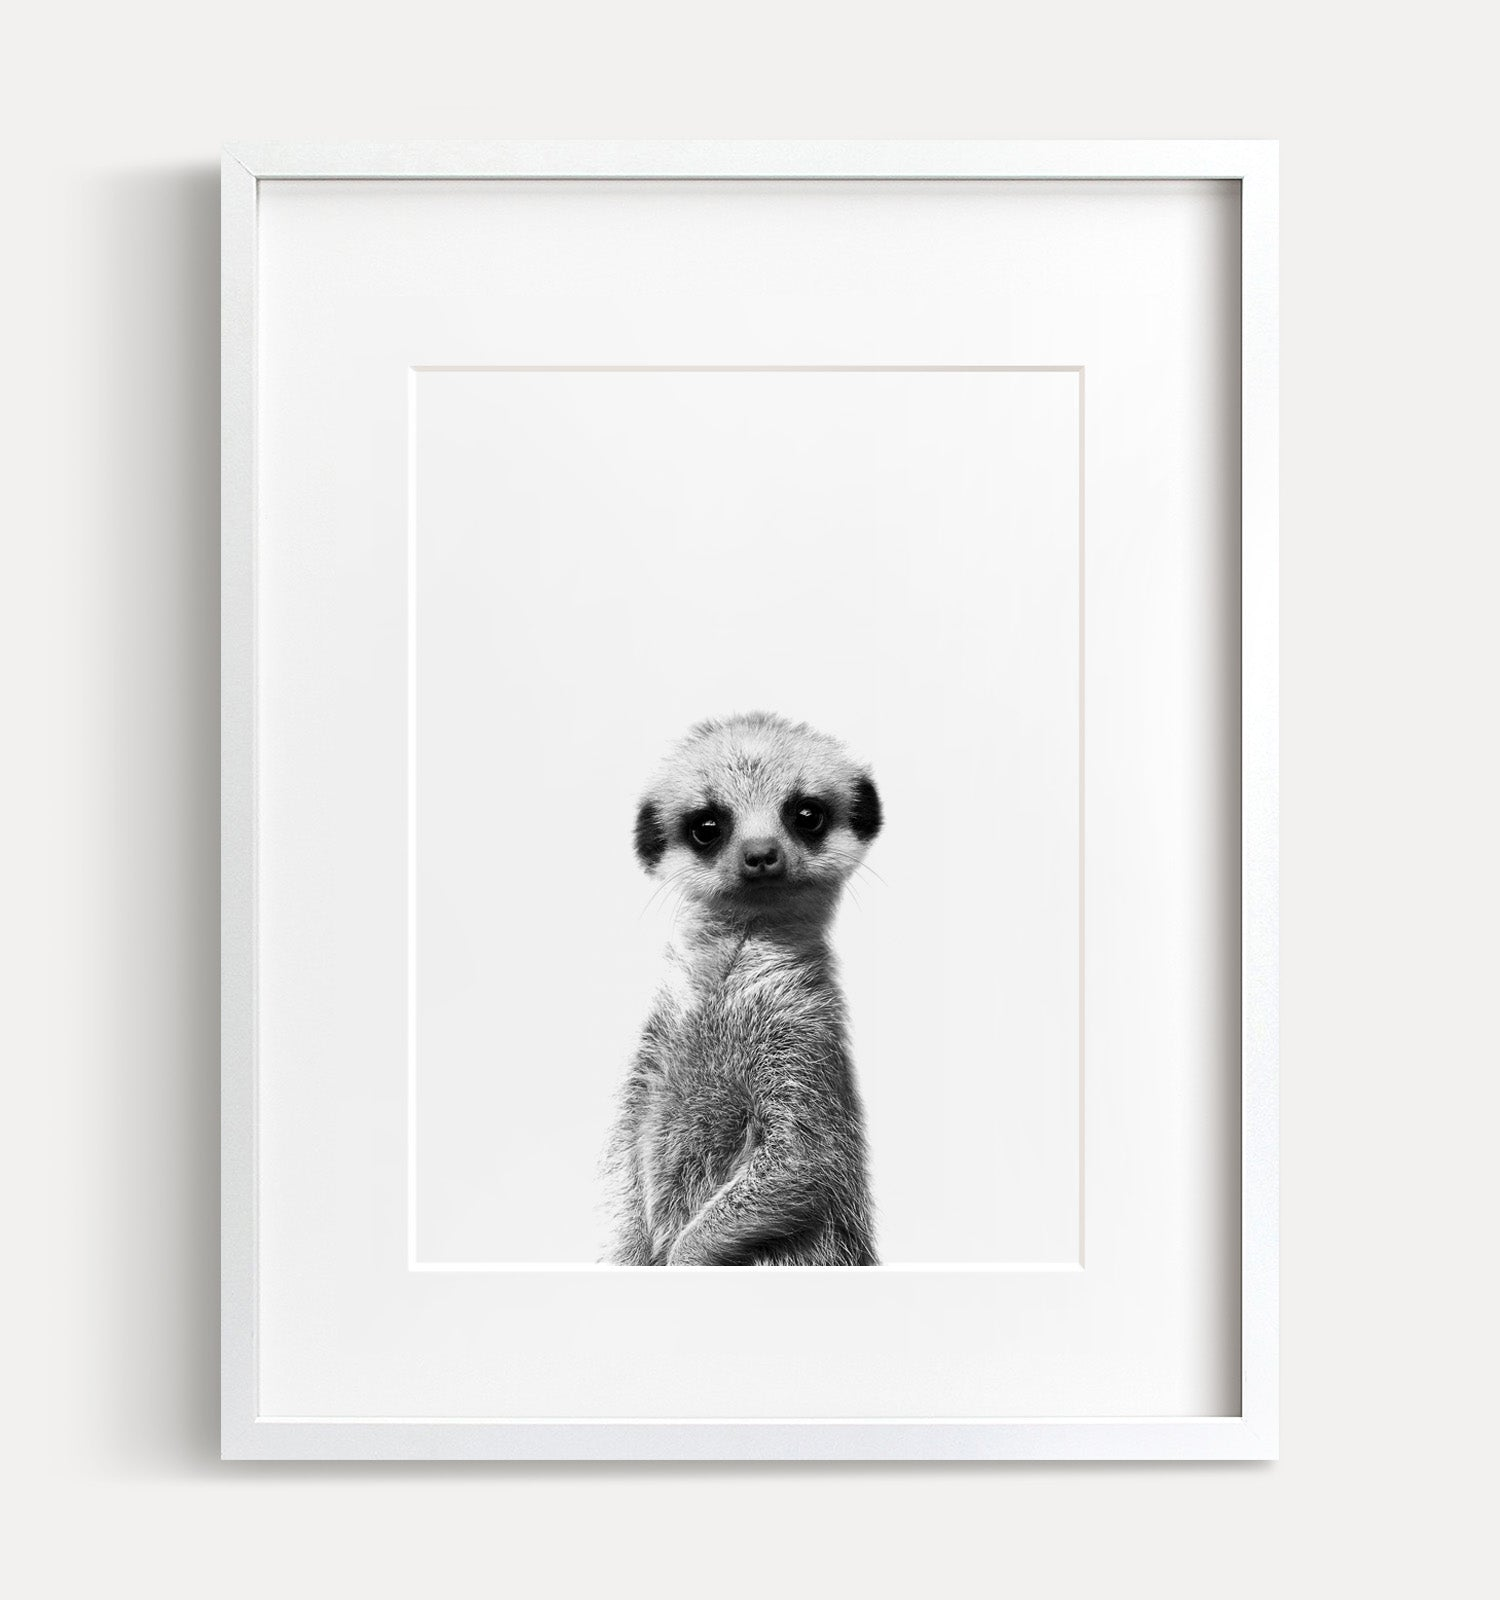 Baby Meerkat Printable Art - Black and White